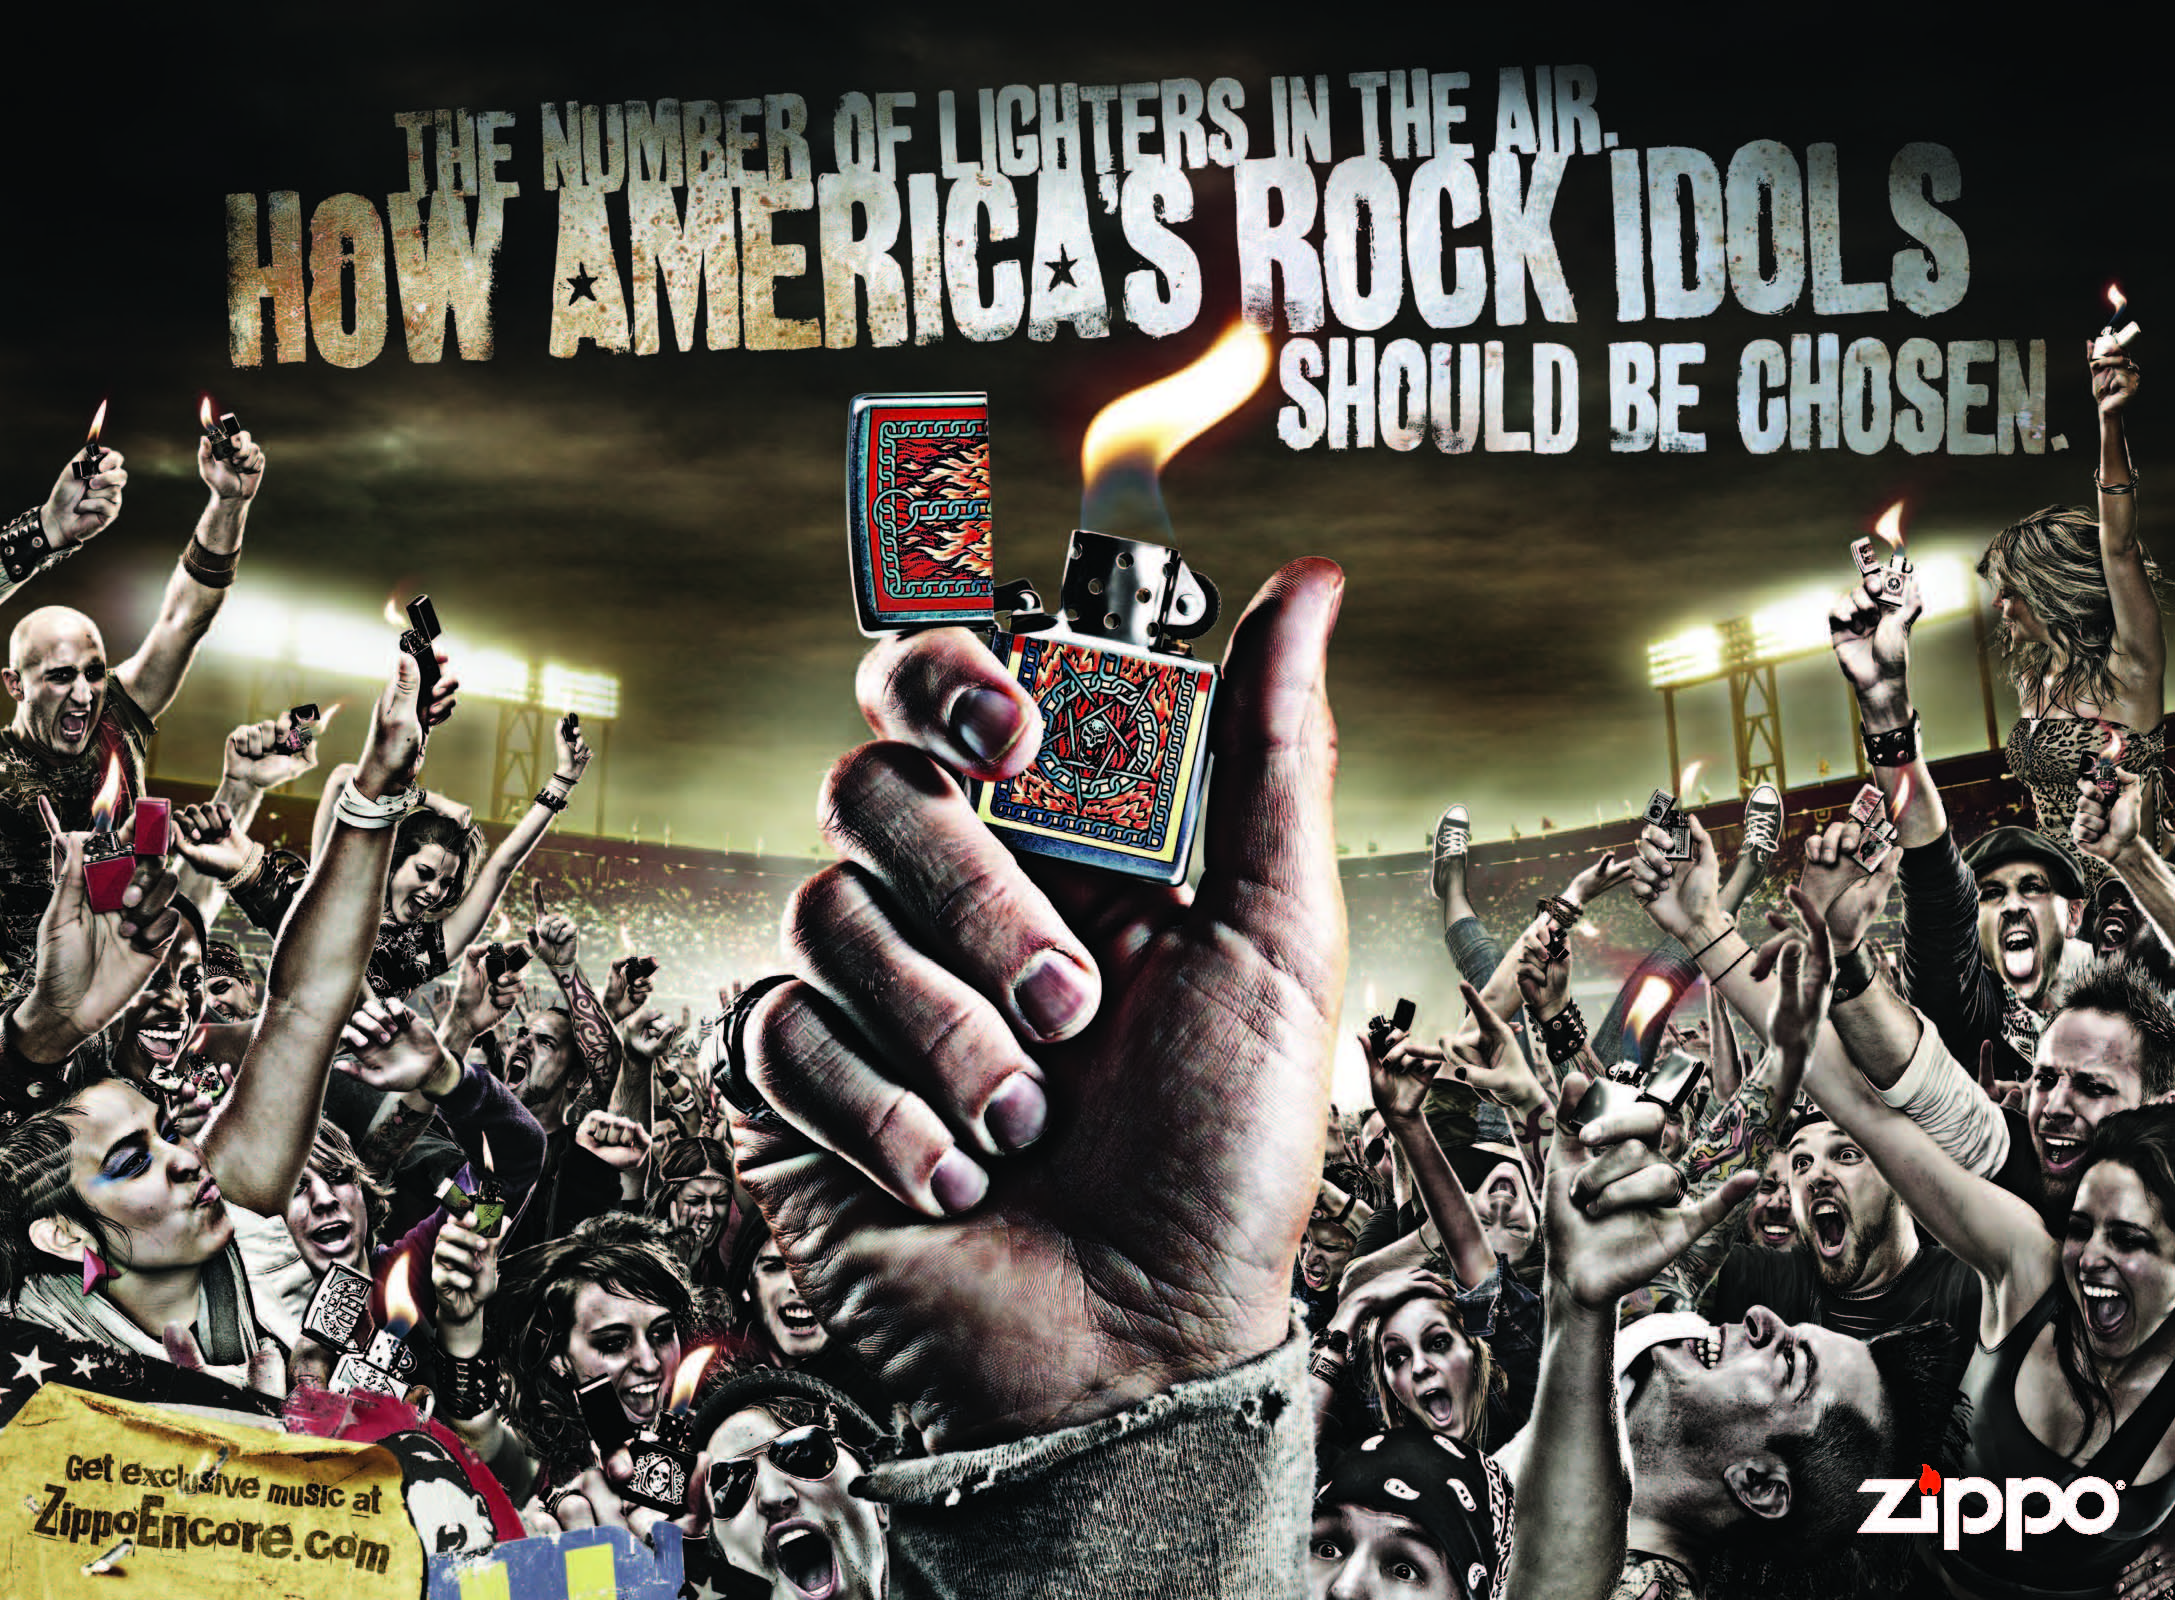 2380-1_Zippo_RS_Campaign_Page_1.jpg